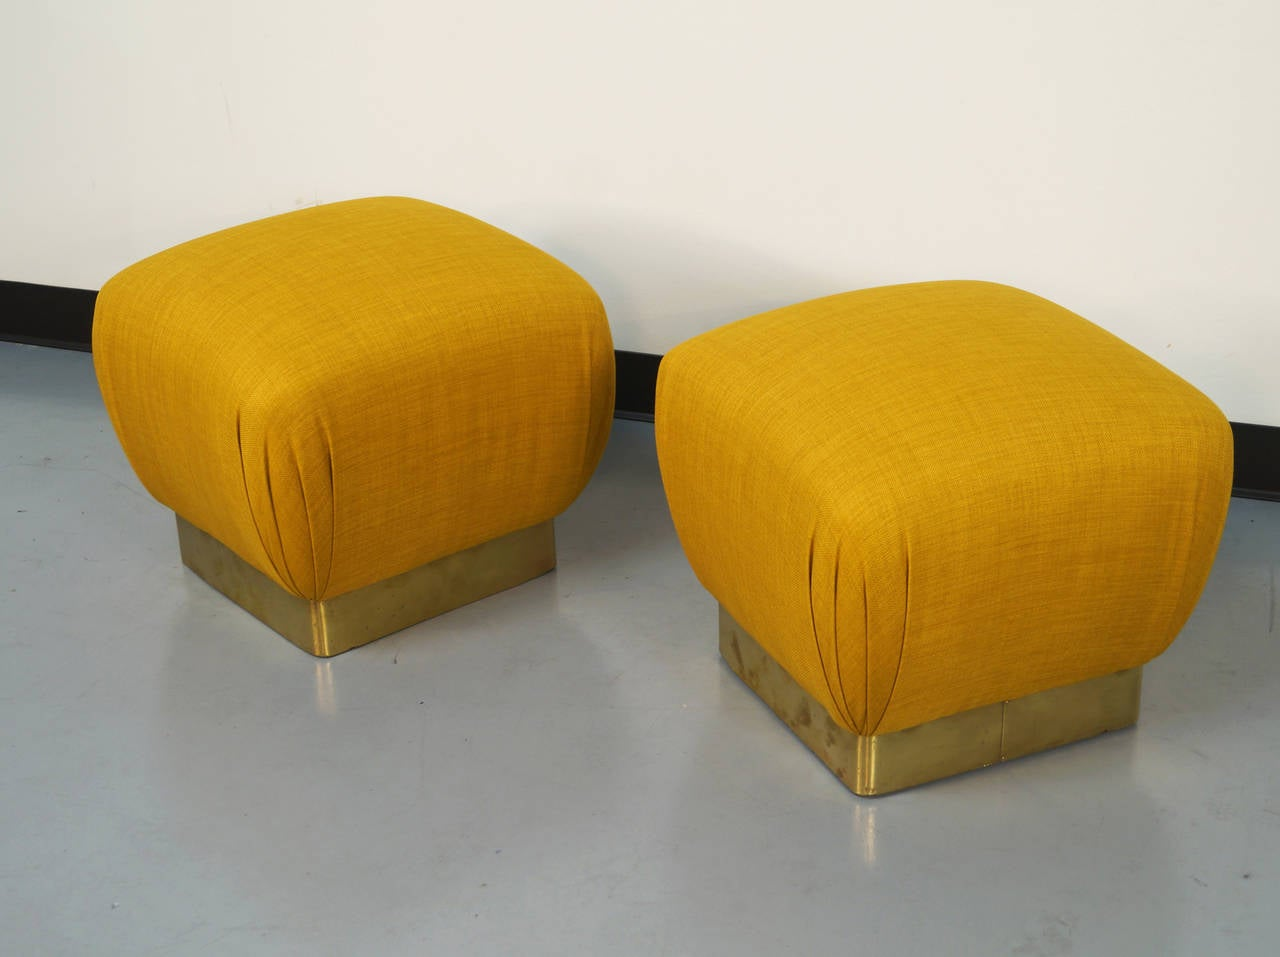 vintage brass poufs or ottomans by marge carson at 1stdibs. Black Bedroom Furniture Sets. Home Design Ideas